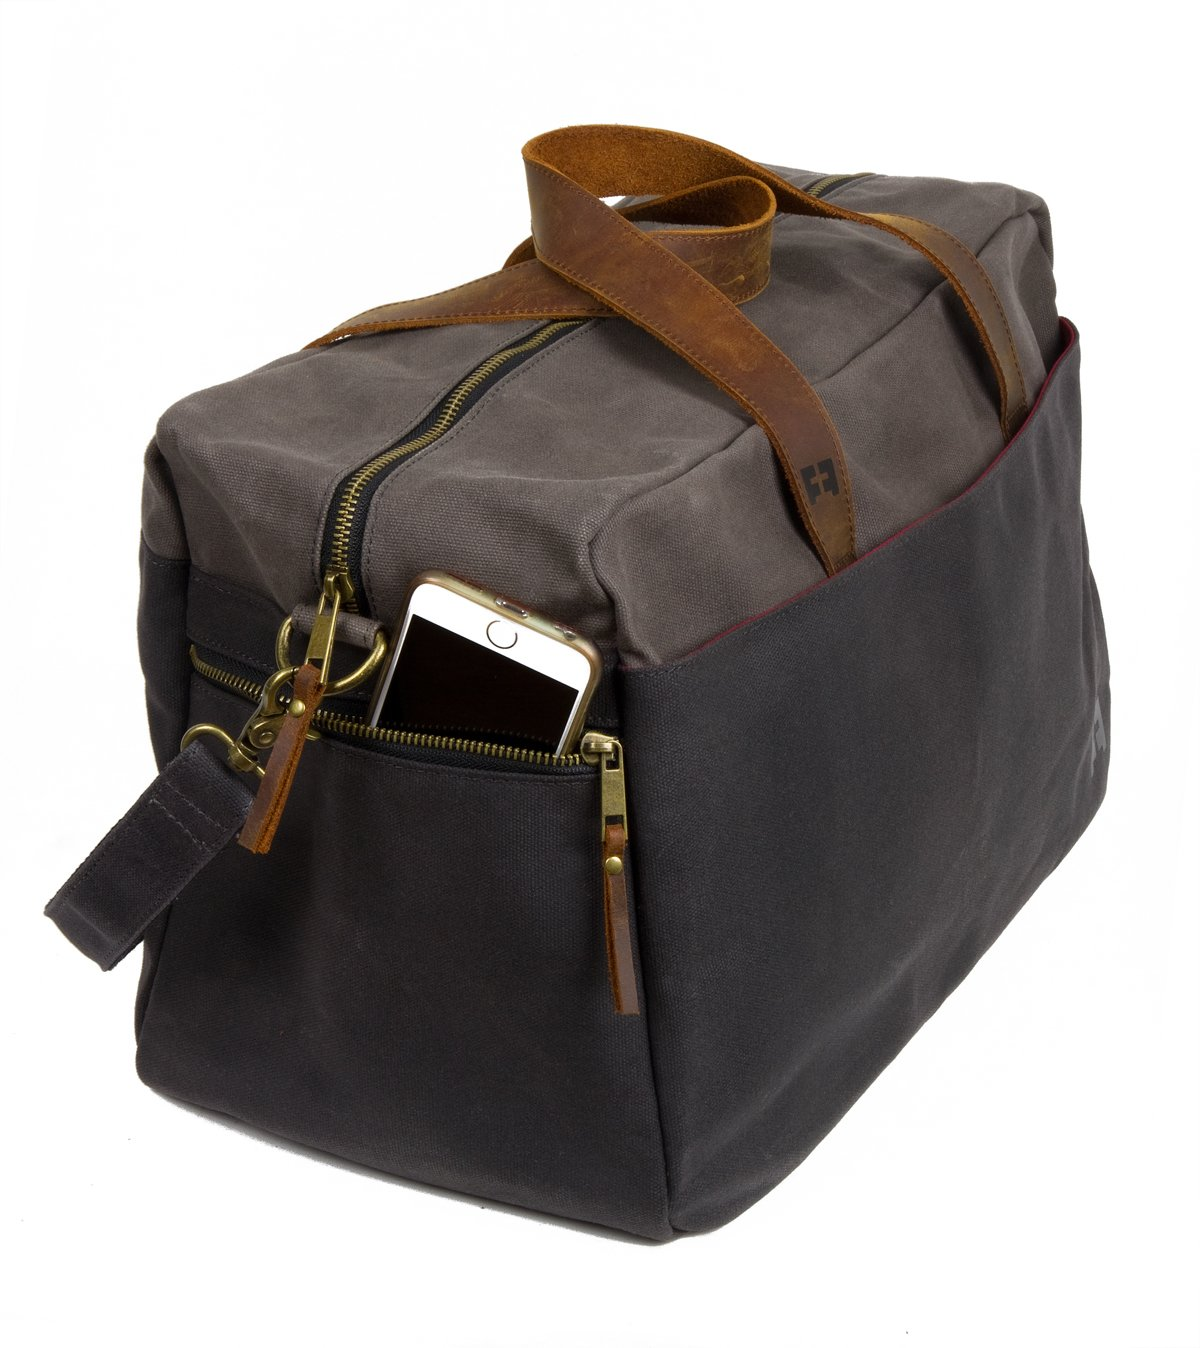 Waxed Cotton Canvas Duffel Bag with Leather Handles | the Whitman Weekender Duffel by FAT FELT by FAT FELT (Image #8)